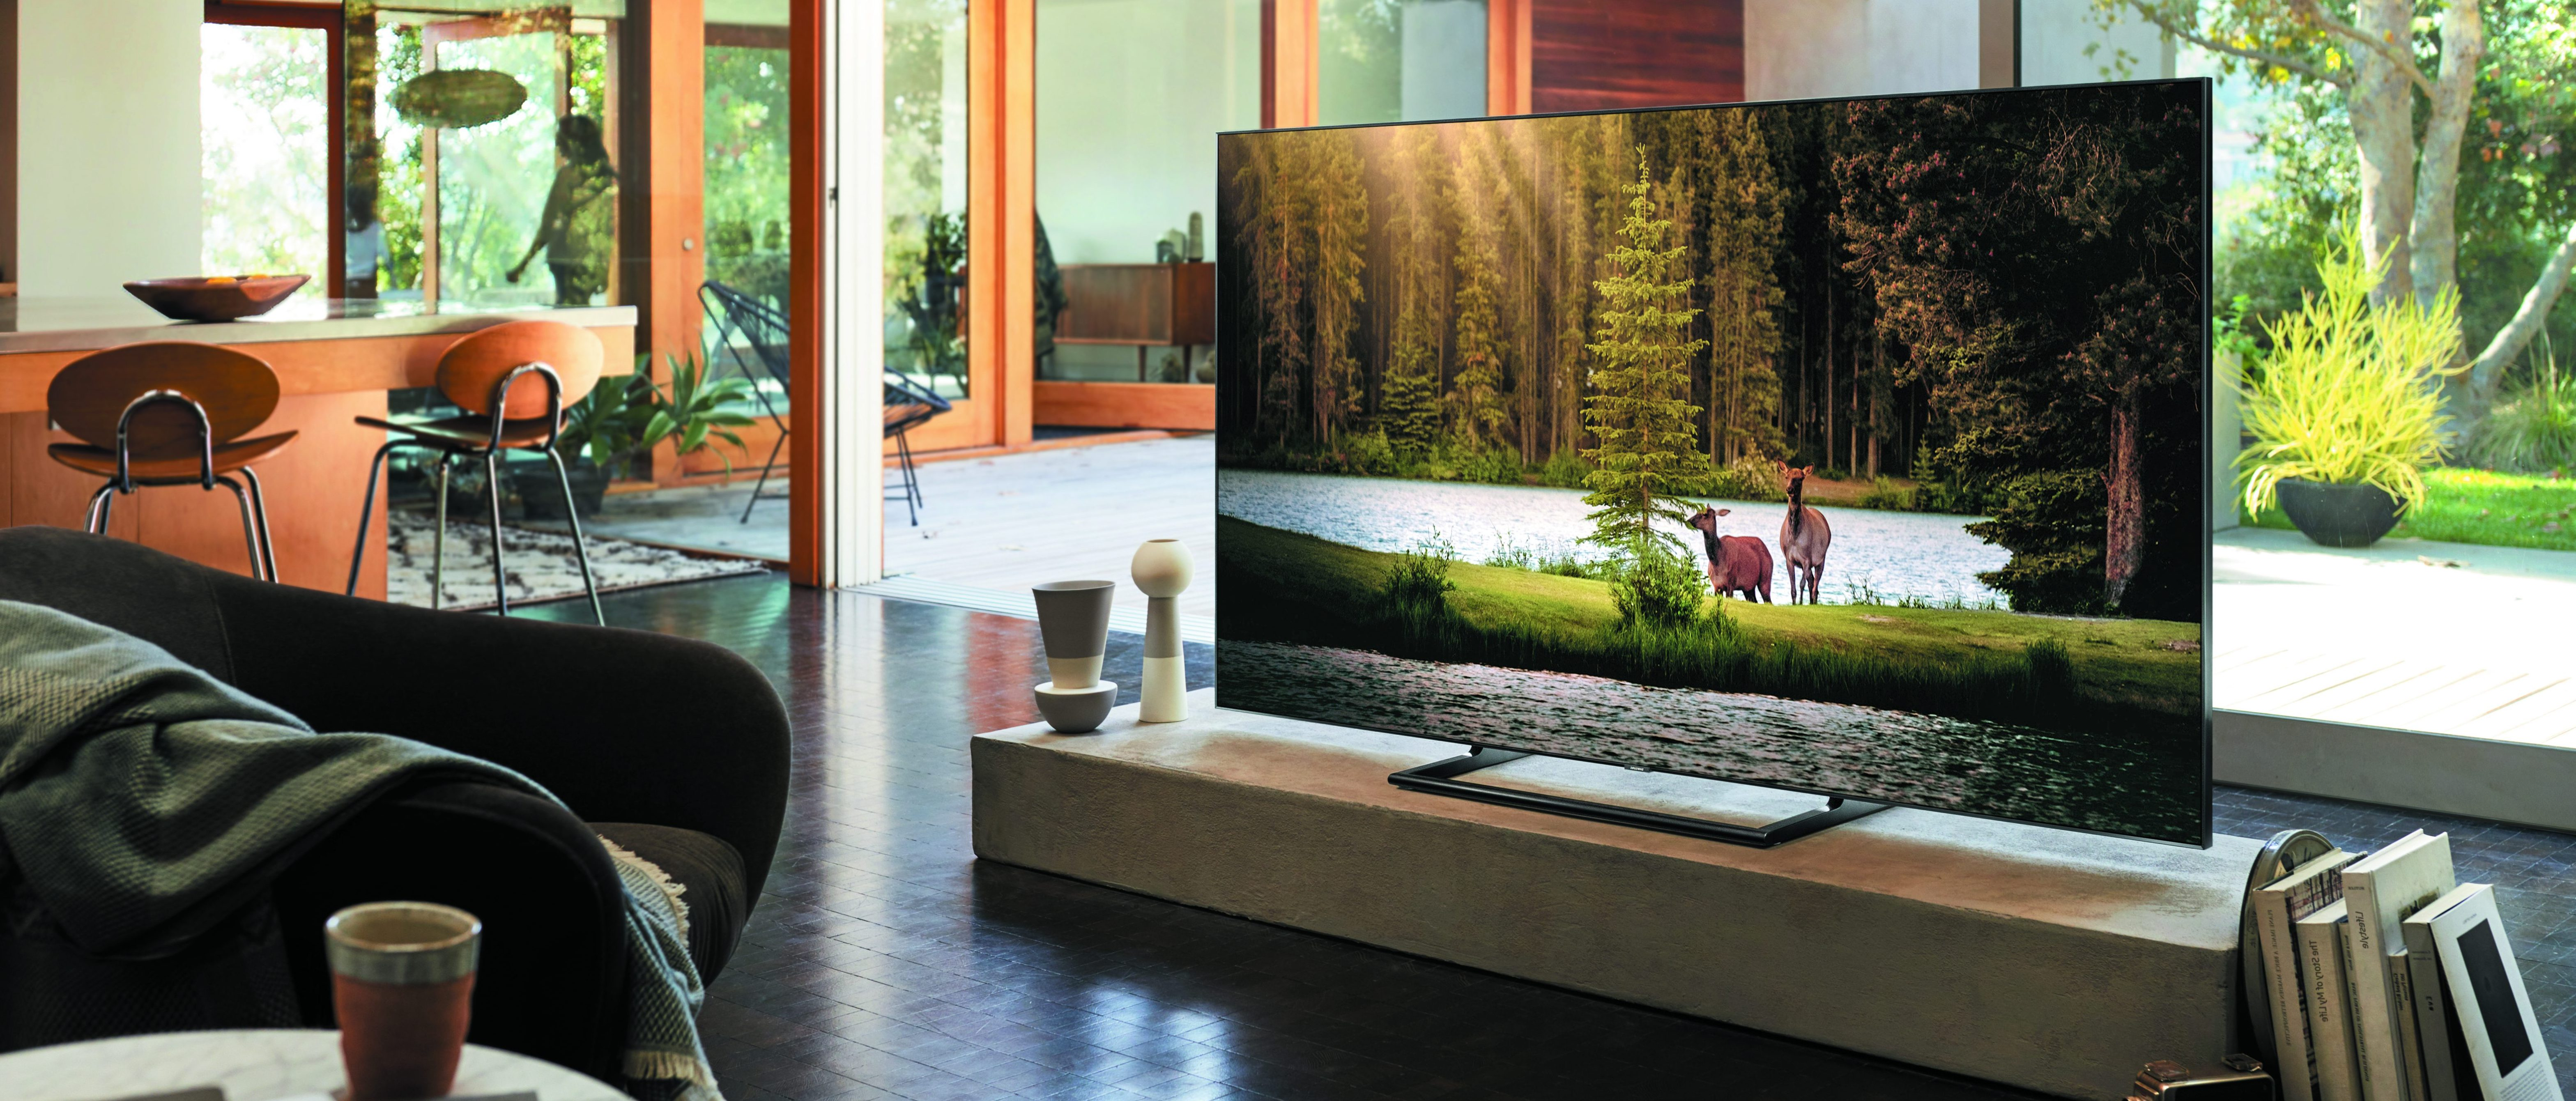 Samsung's 2018 Lineup: Home Entertainment Elevated - Samsung